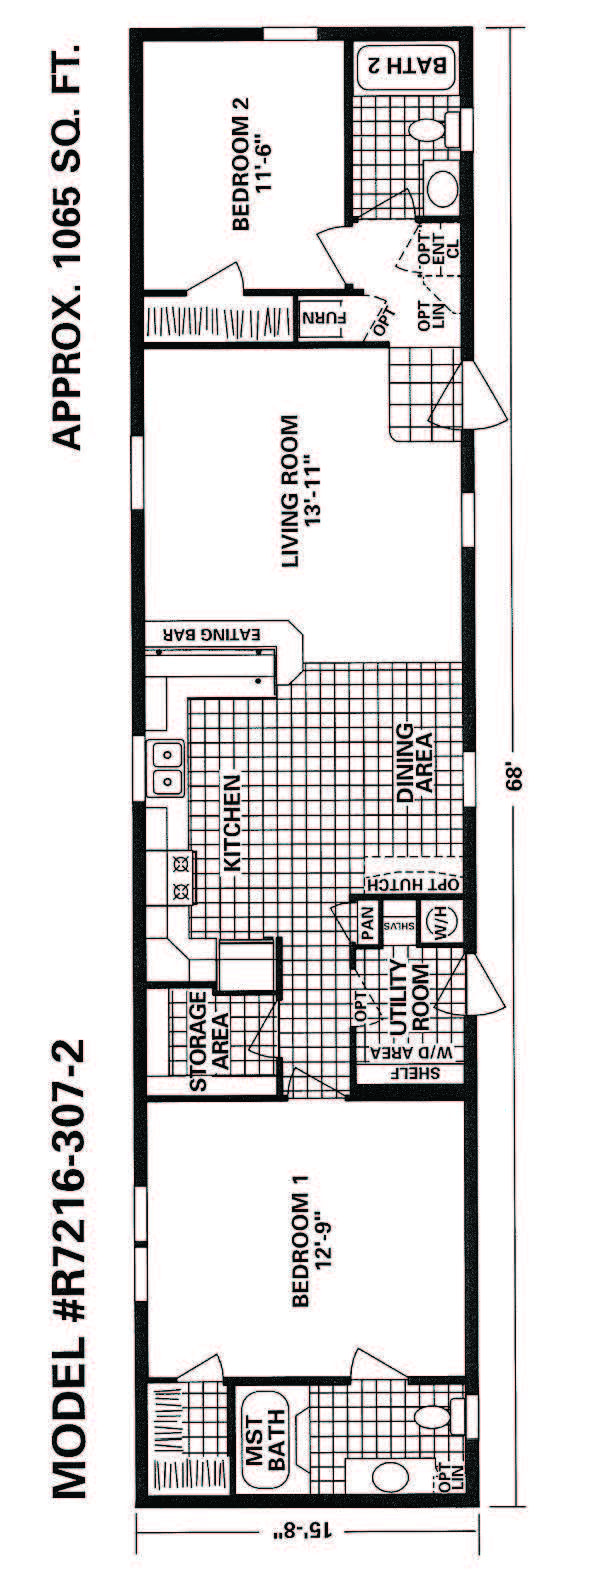 e679677e3dd24301e0453834bf59f38e single wide main street 219 best home design, single wide images on pinterest single Single Wide Mobile Home Plumbing Diagram at bayanpartner.co